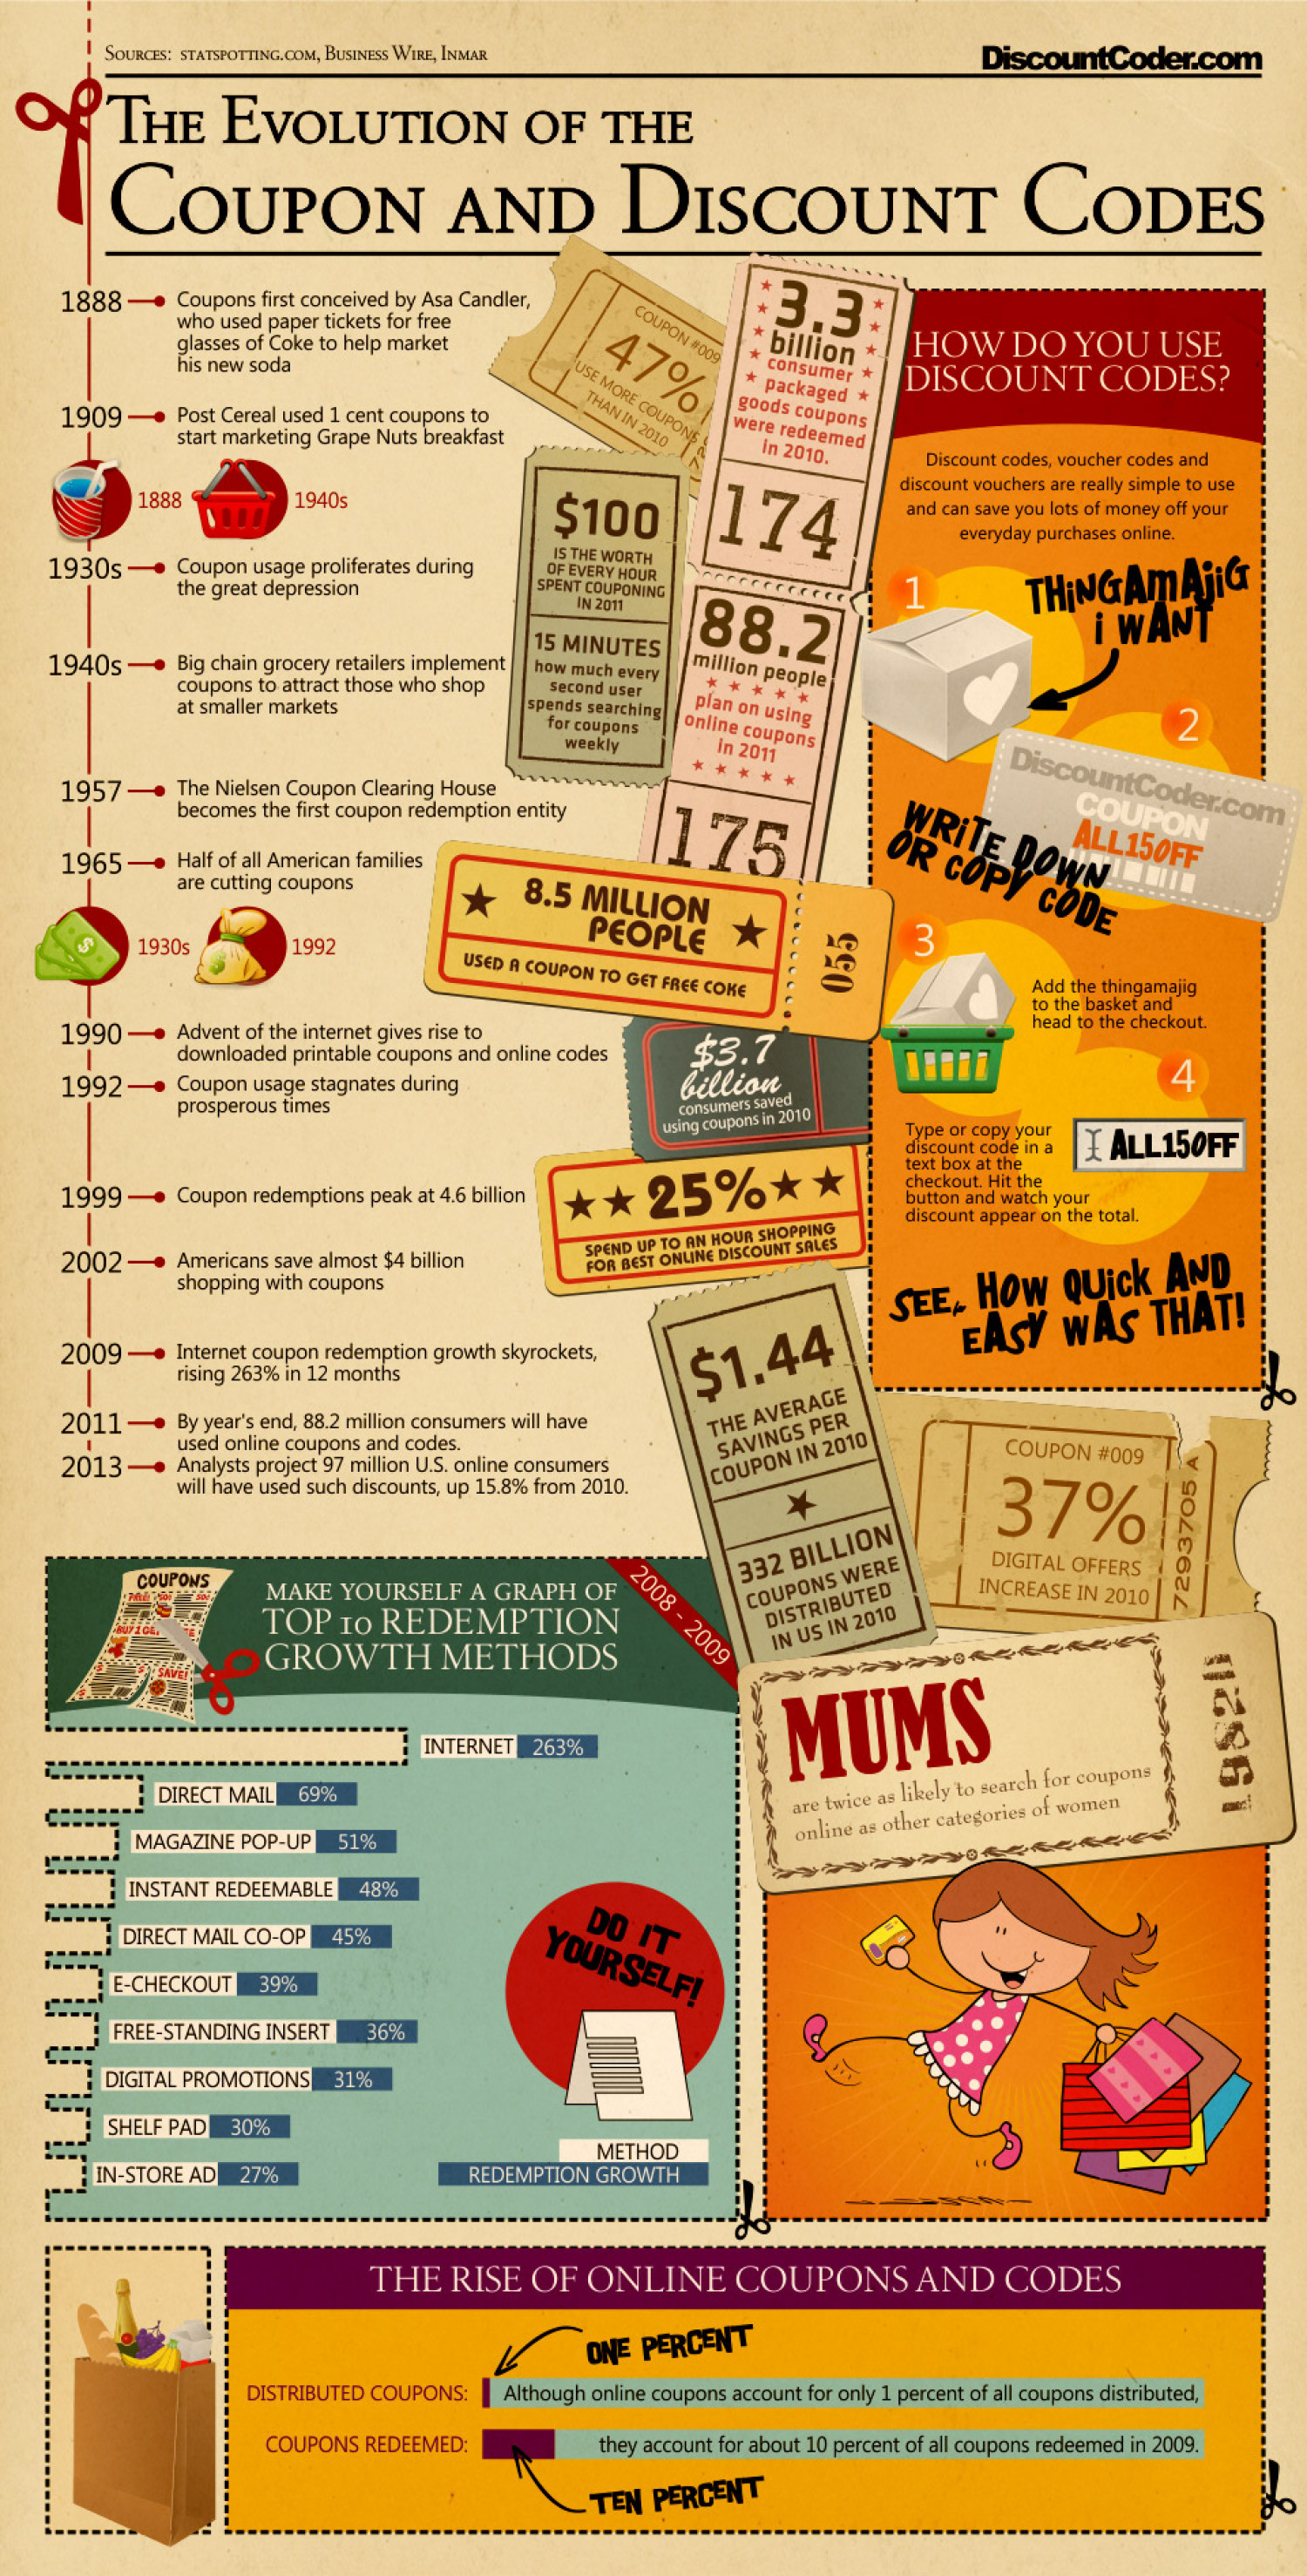 Evolution of coupons and discount codes visual evolution of coupons and discount codes infographic fandeluxe Choice Image